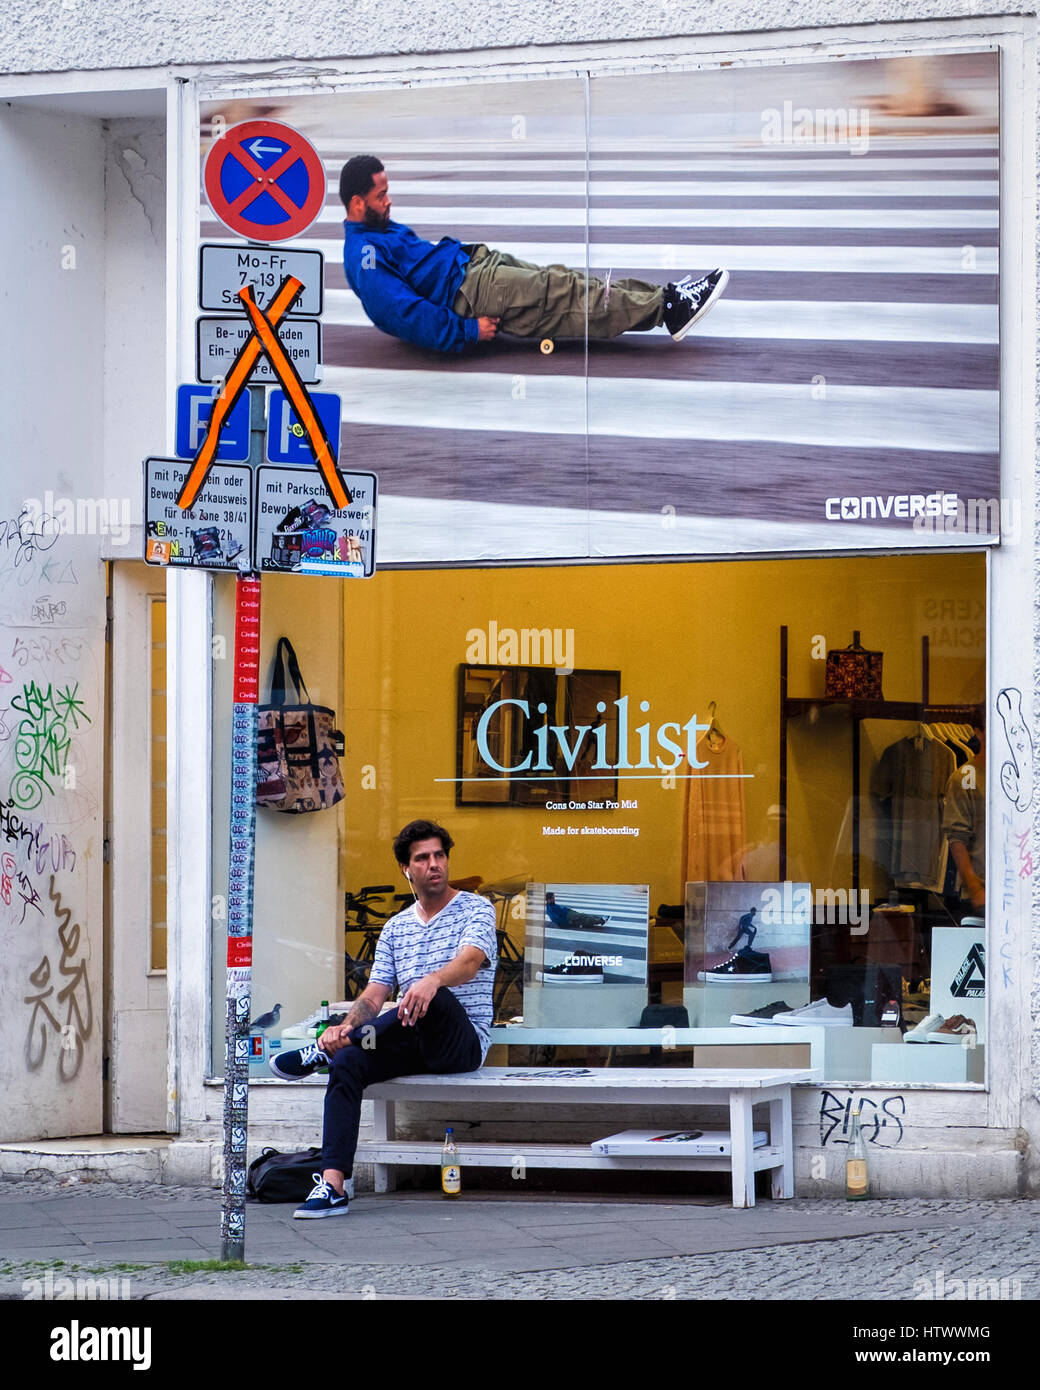 e30237c6b3fa Civilist shop selling Converse trainers and clothing. Exterior  advertisement and display